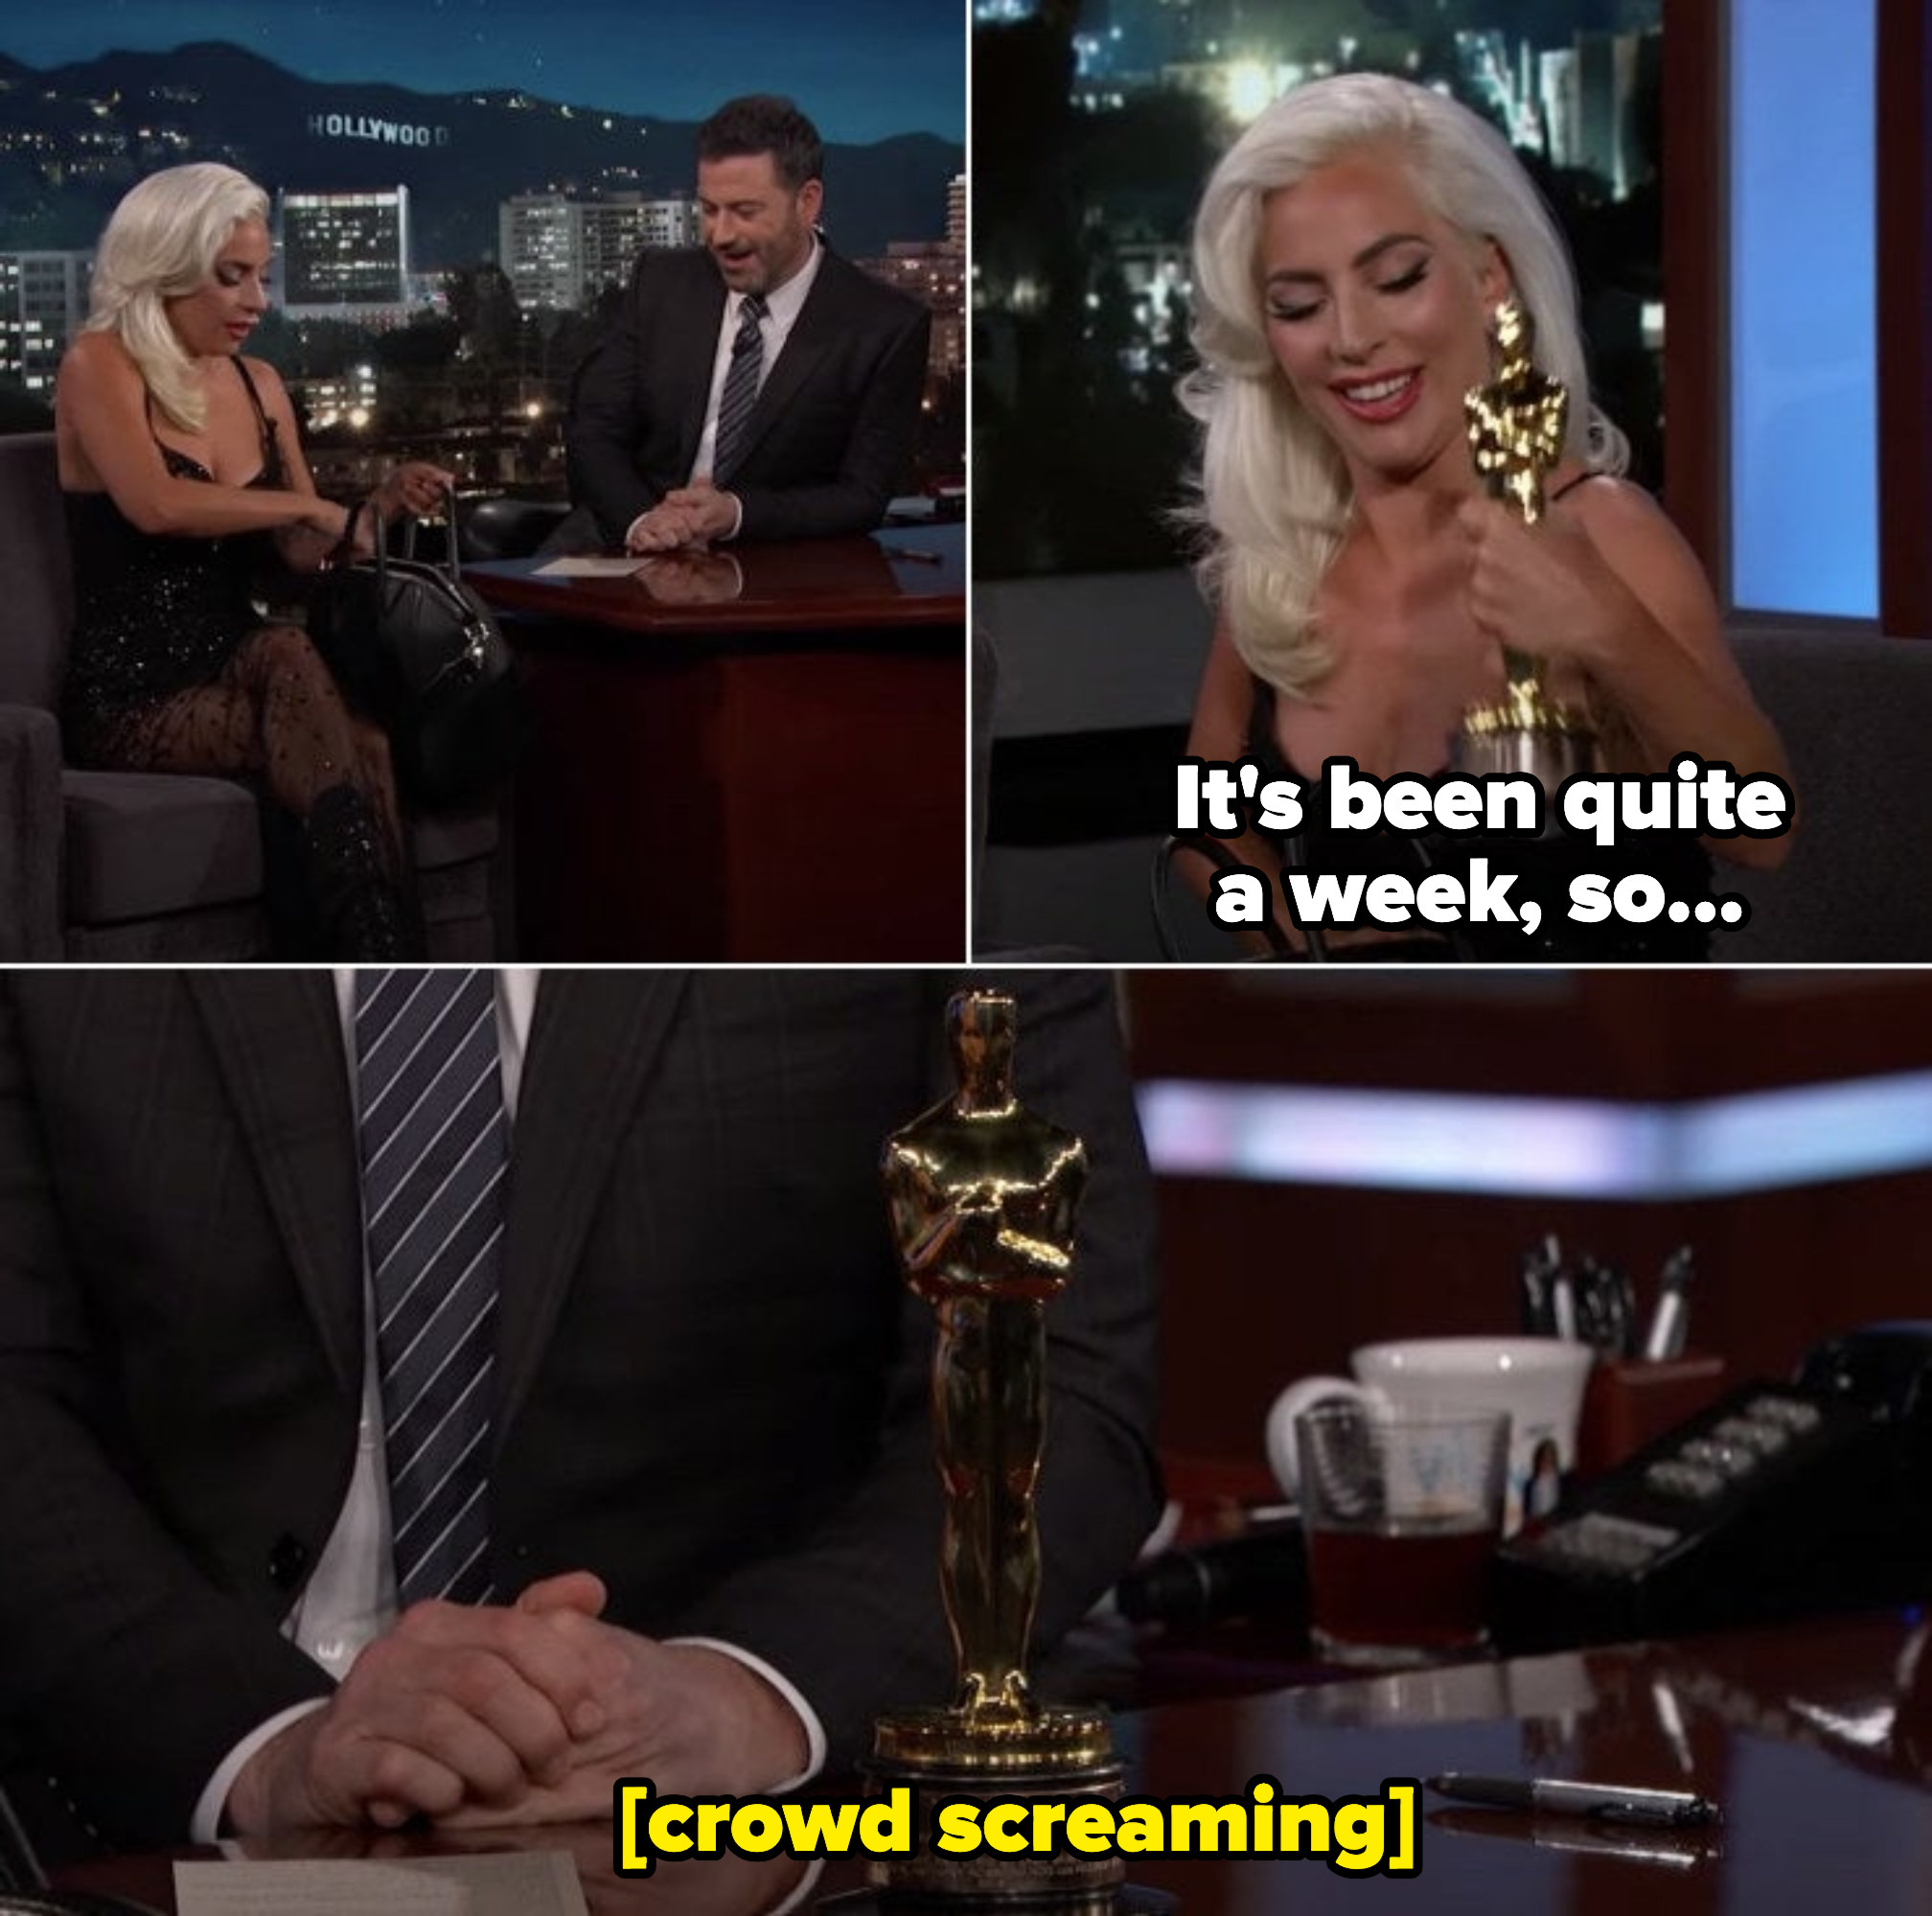 """Lady Gaga: """"It's been quite a week, so..."""" Places Oscar statue on Jimmy's desk as crowd cheers"""